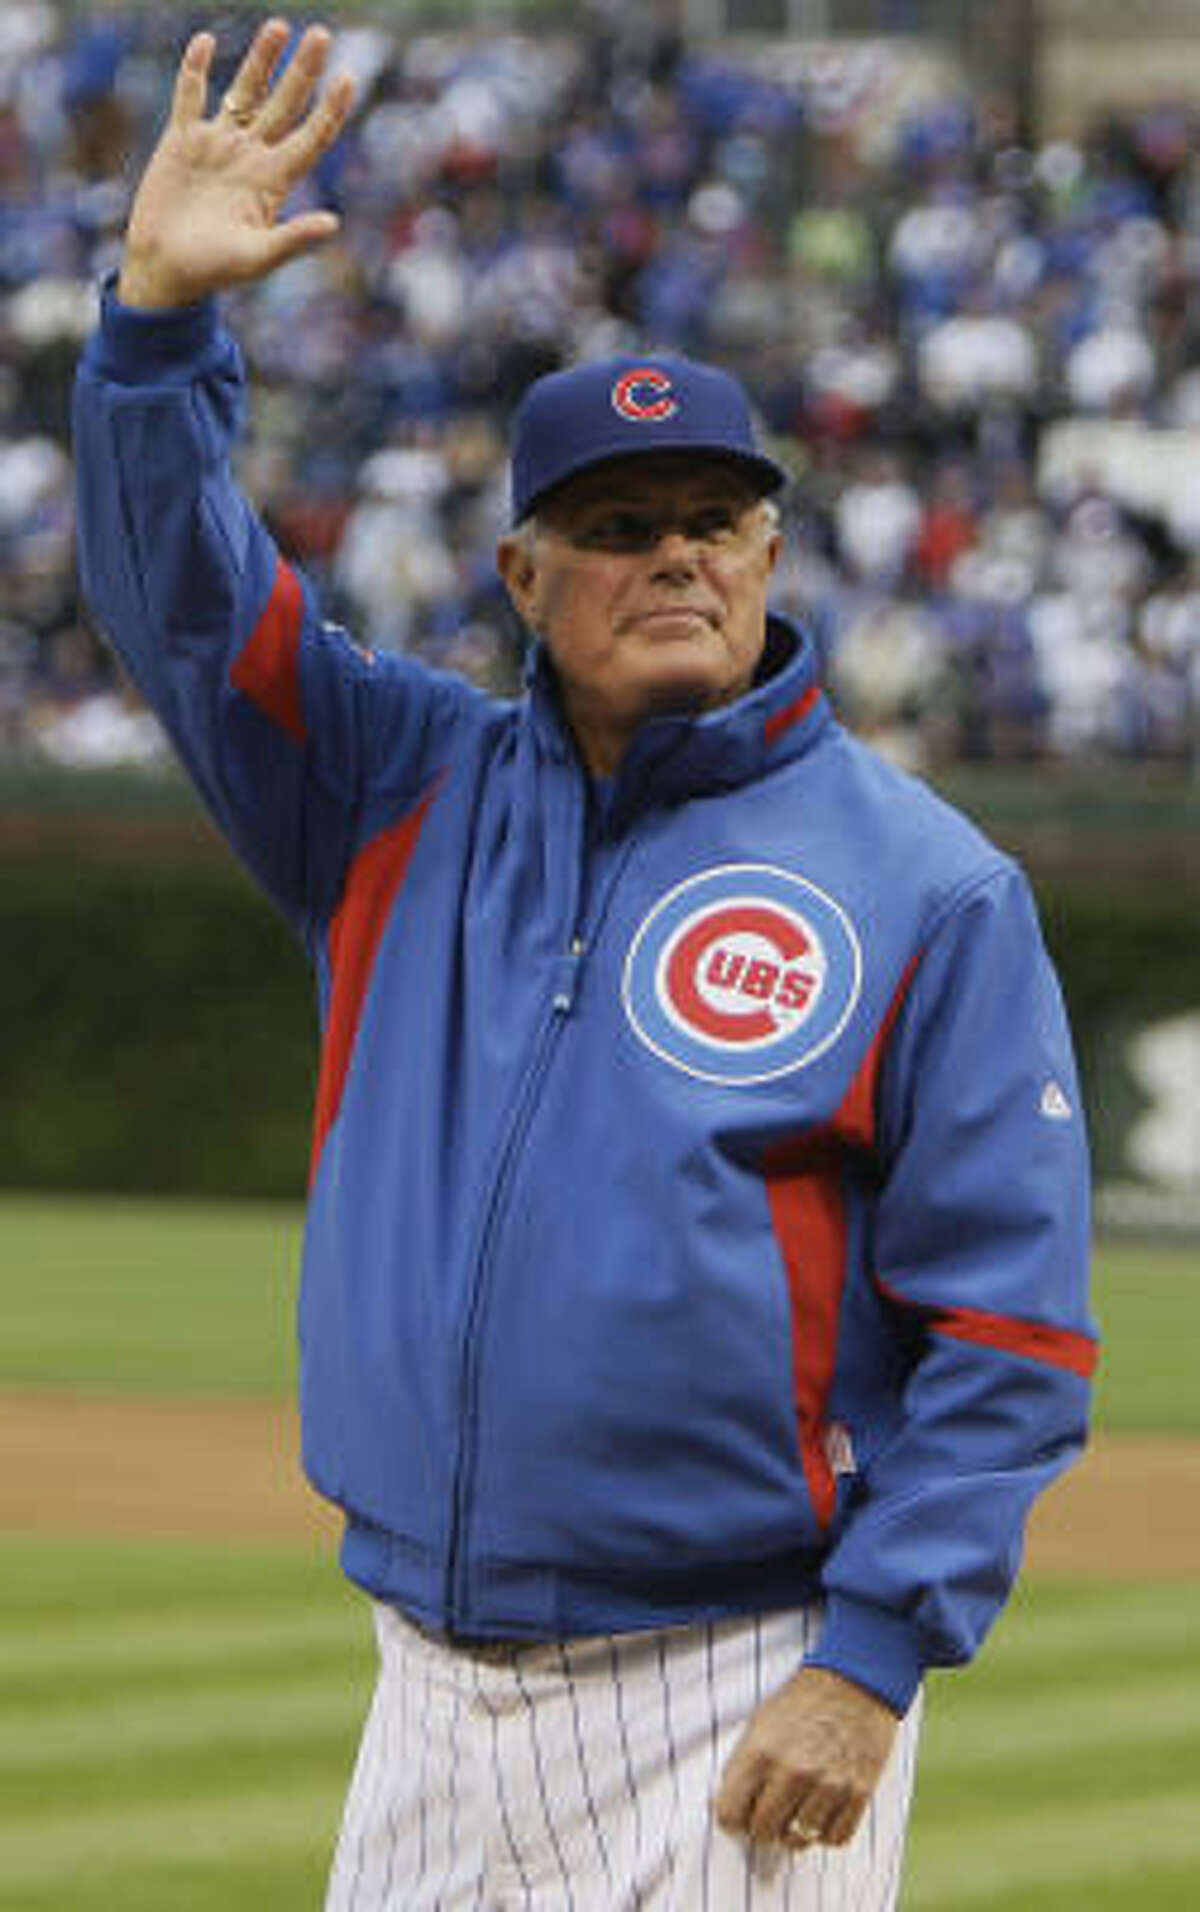 April 6 The season officially begins as the Astros host Lou Pinella's Cubs on Opening Day at Minute Maid Park.